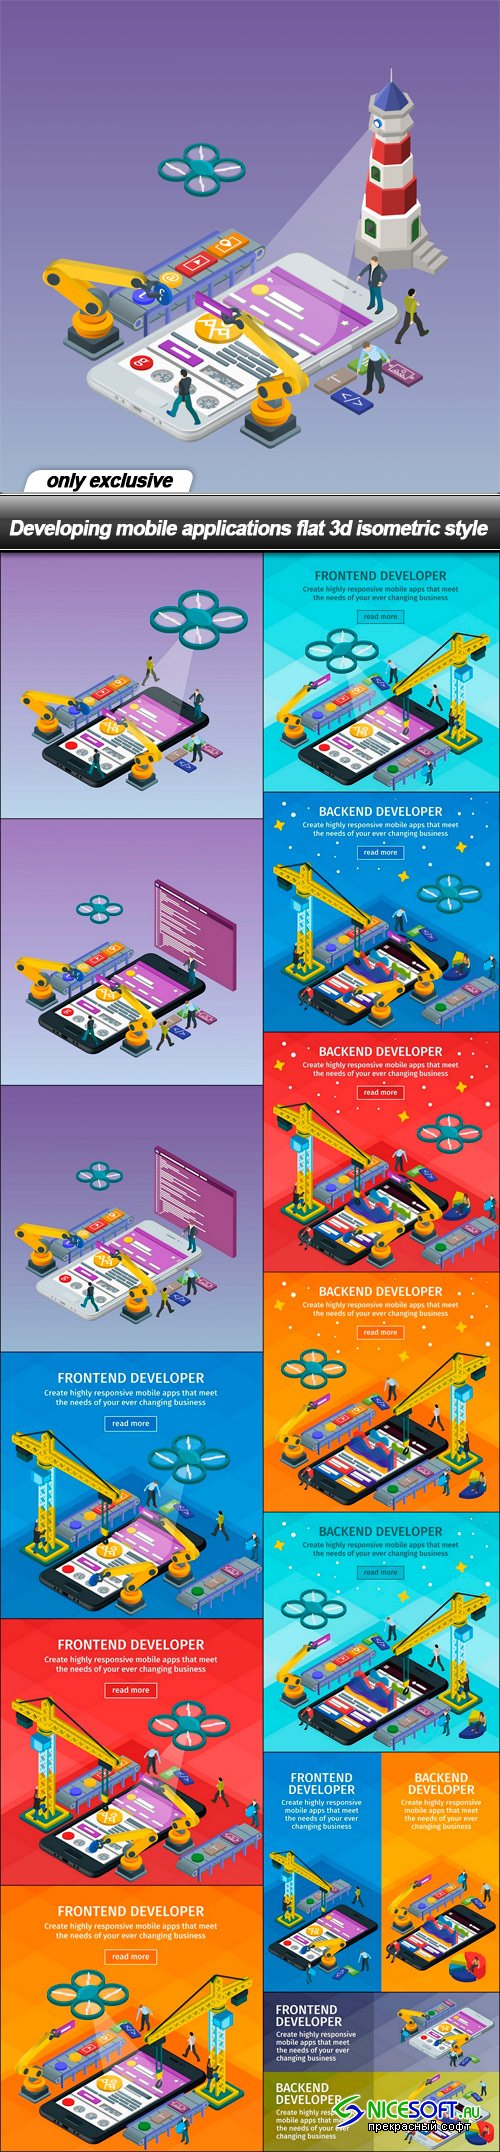 Developing mobile applications flat 3d isometric style